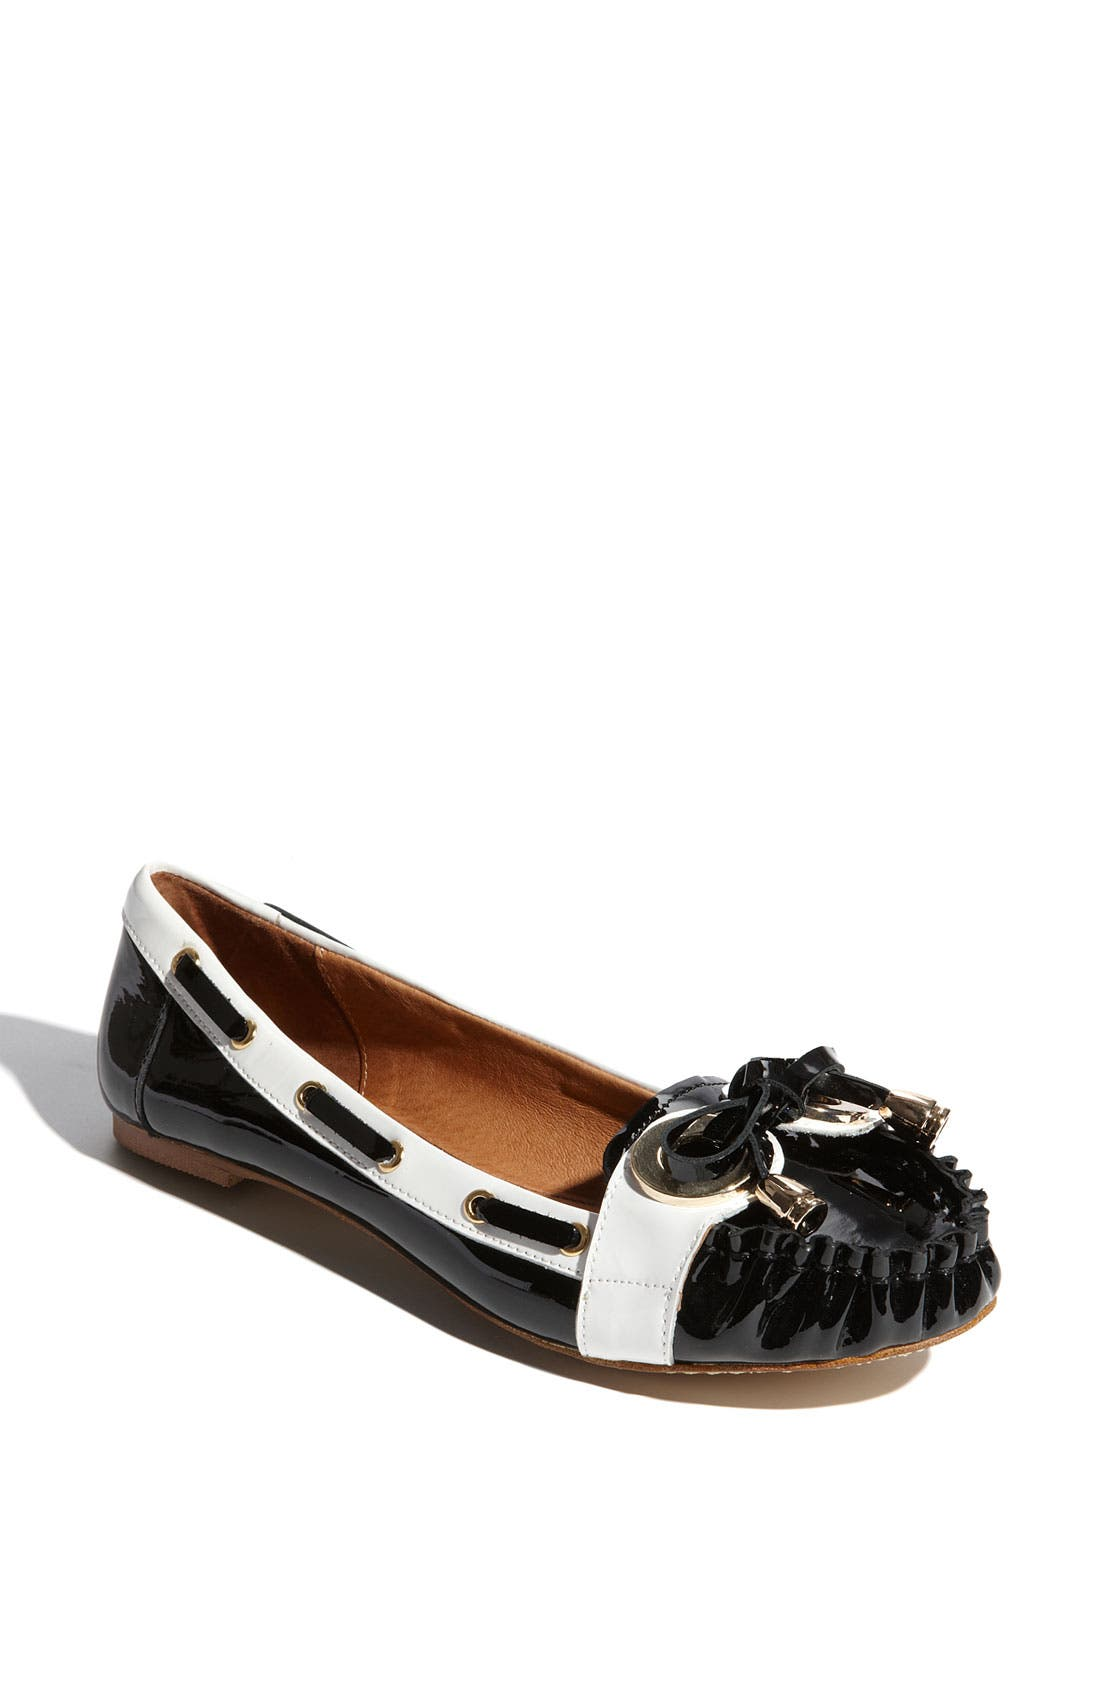 Alternate Image 1 Selected - Jeffrey Campbell 'Portal' Loafer